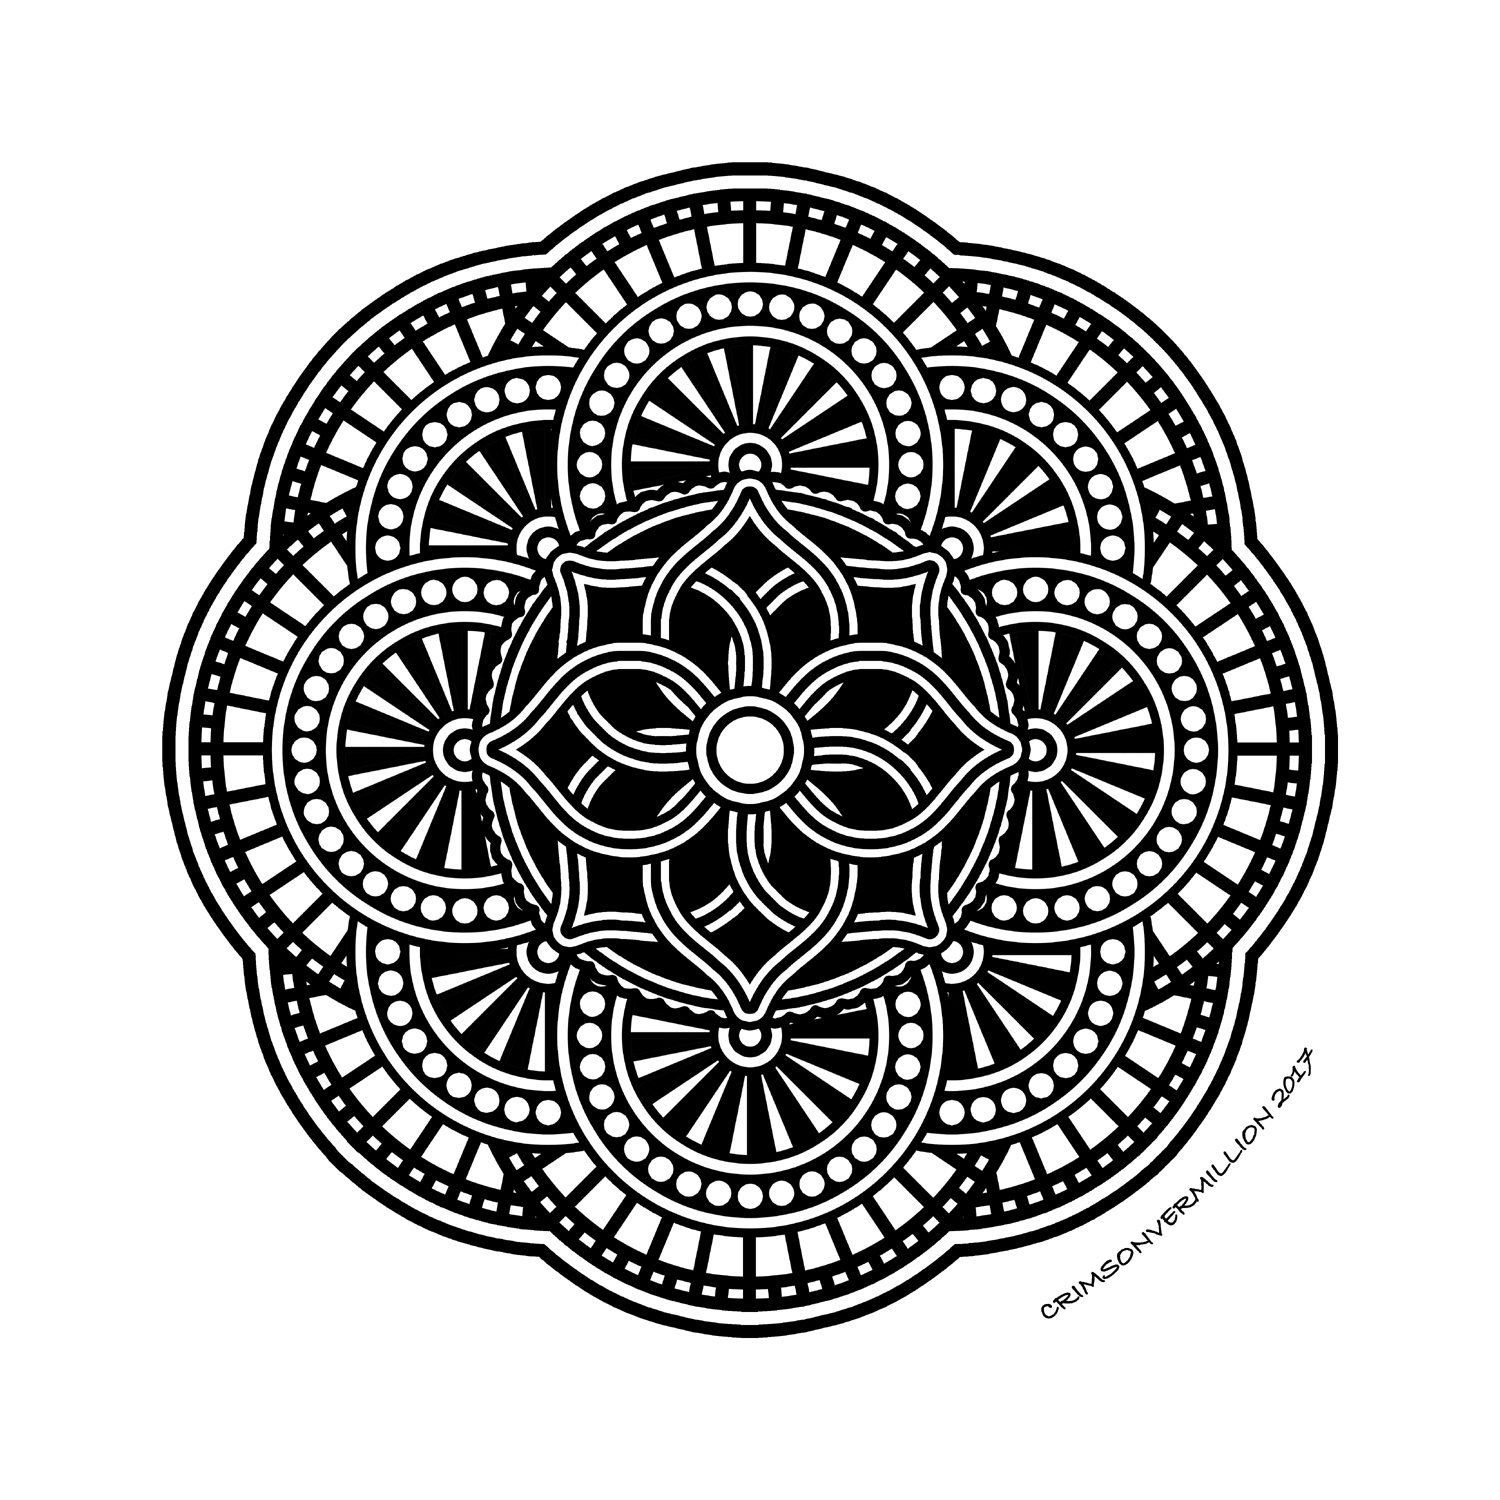 Let go and enjoy this beautiful mandala !